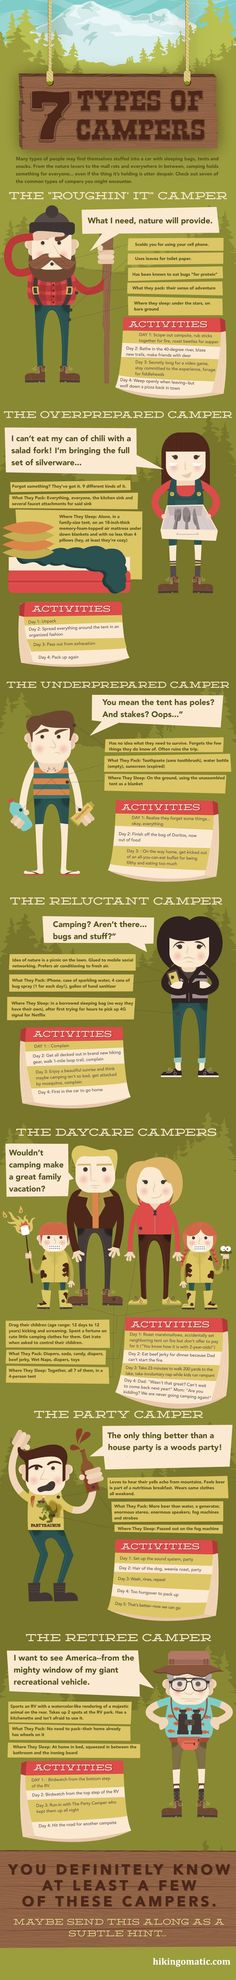 7 Types Of Campers: Whats your type? - A great info-graphic to know about 7 types of campers in a funny way. Lets enjoy and find which type of hiker you are ?  For more hiking fun : www.hikingomatic.com